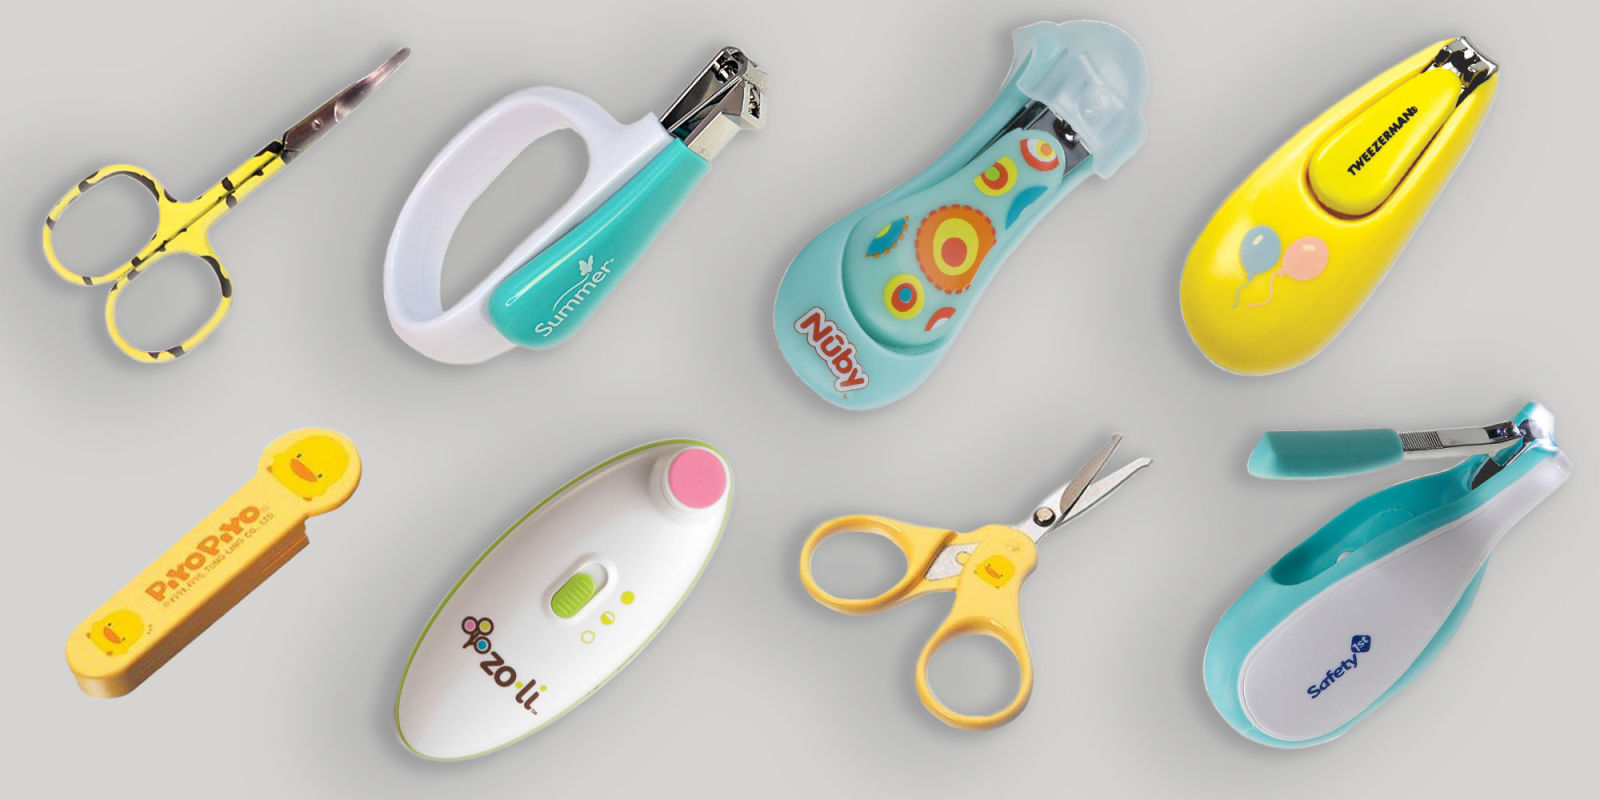 8 Best Baby Nail Clippers of 2017 Nail Trimmers and Clippers for